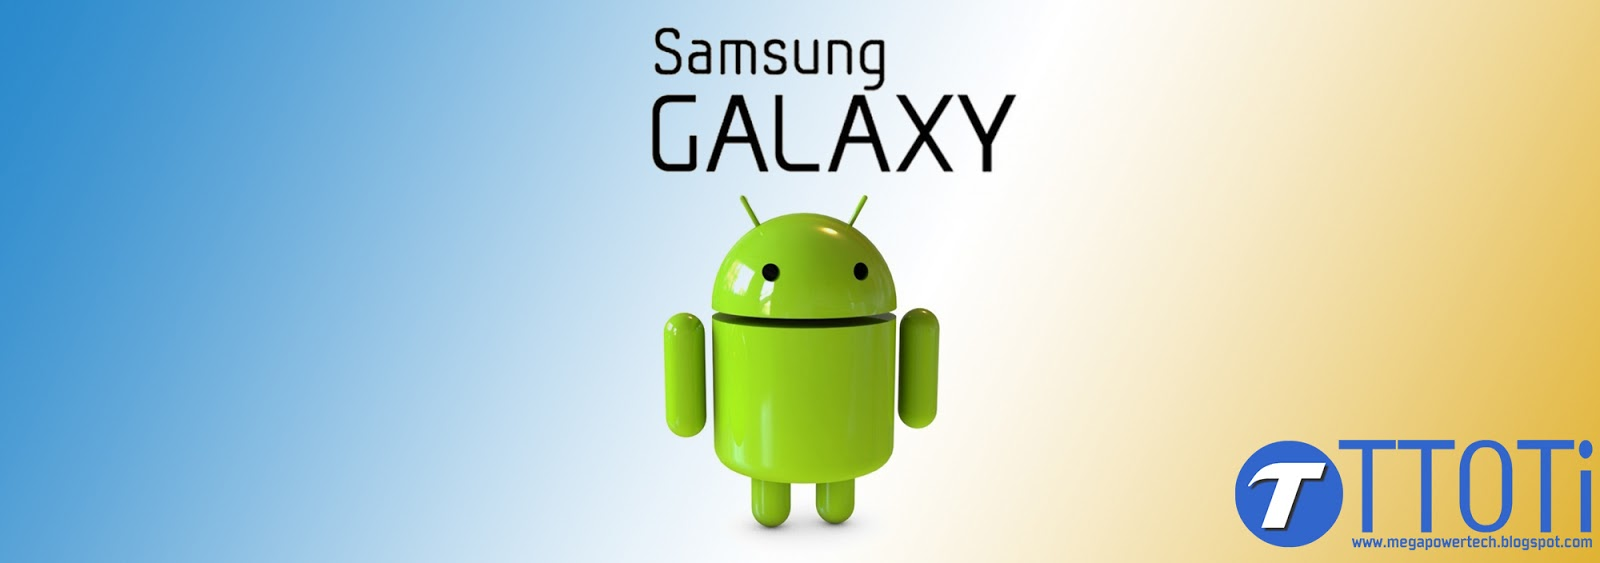 Samsung Galaxy Android Phone